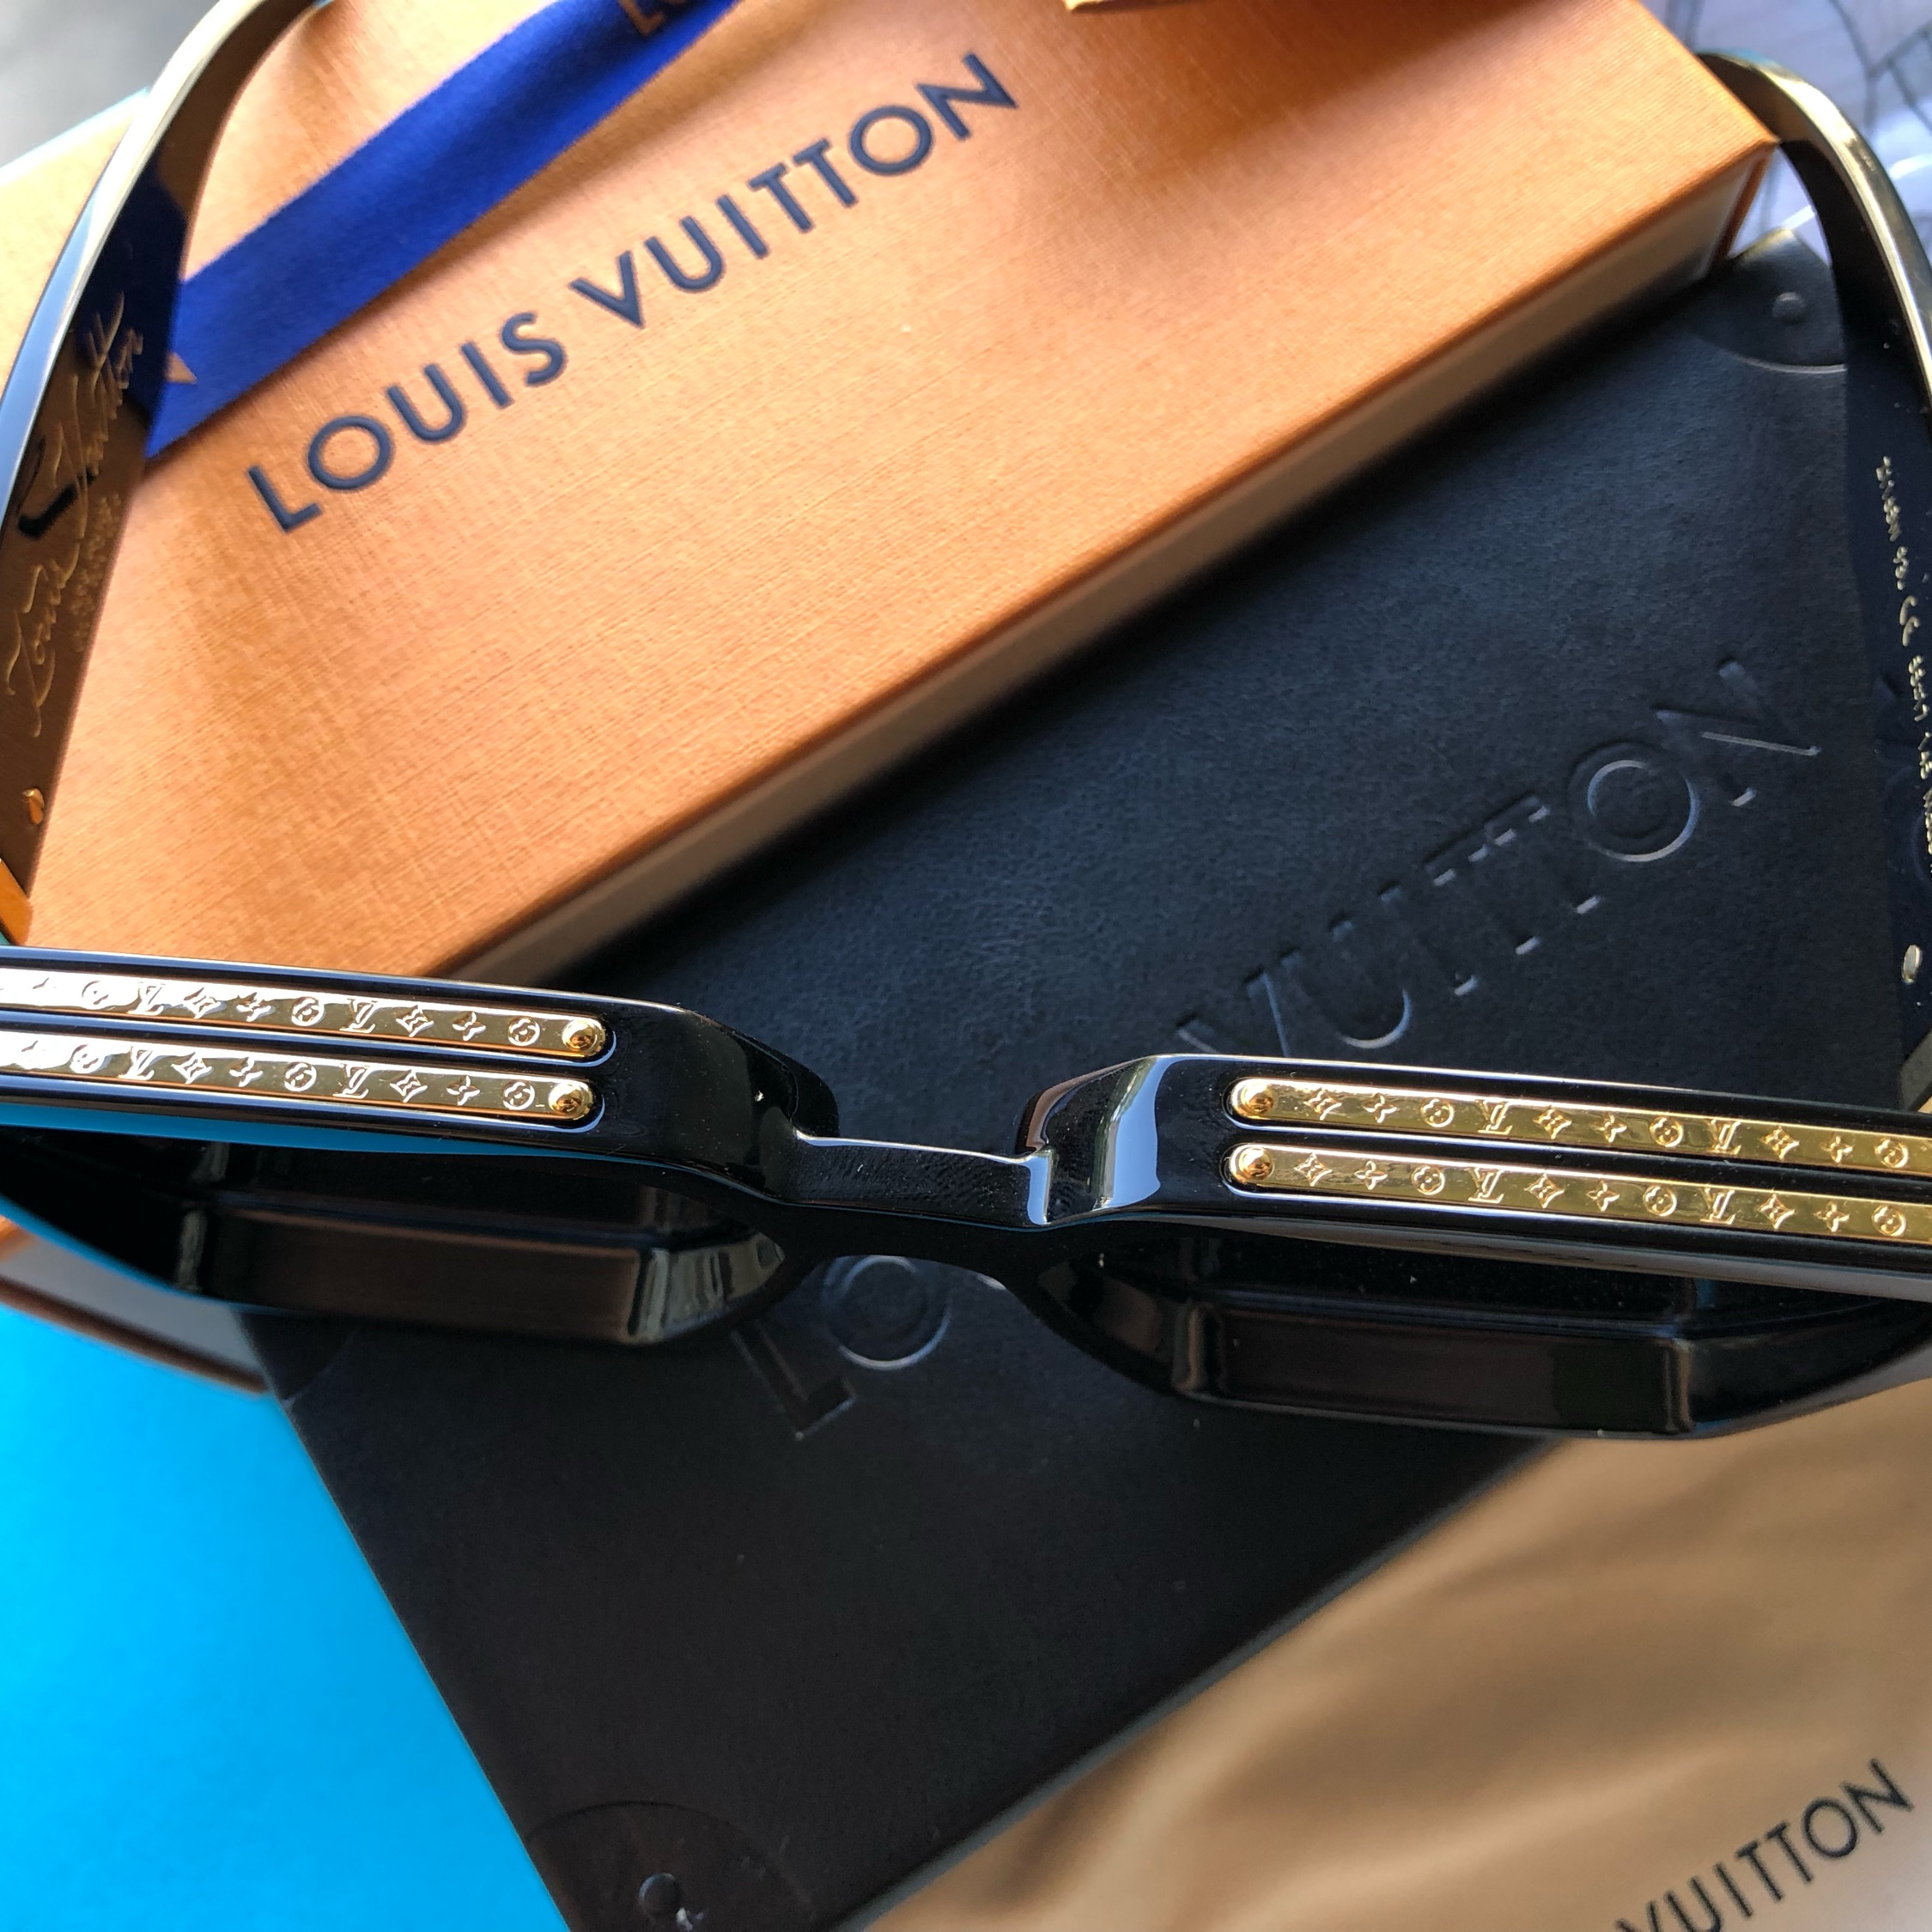 Louis Vuitton Millionaires Virgil Abloh Sunglasses